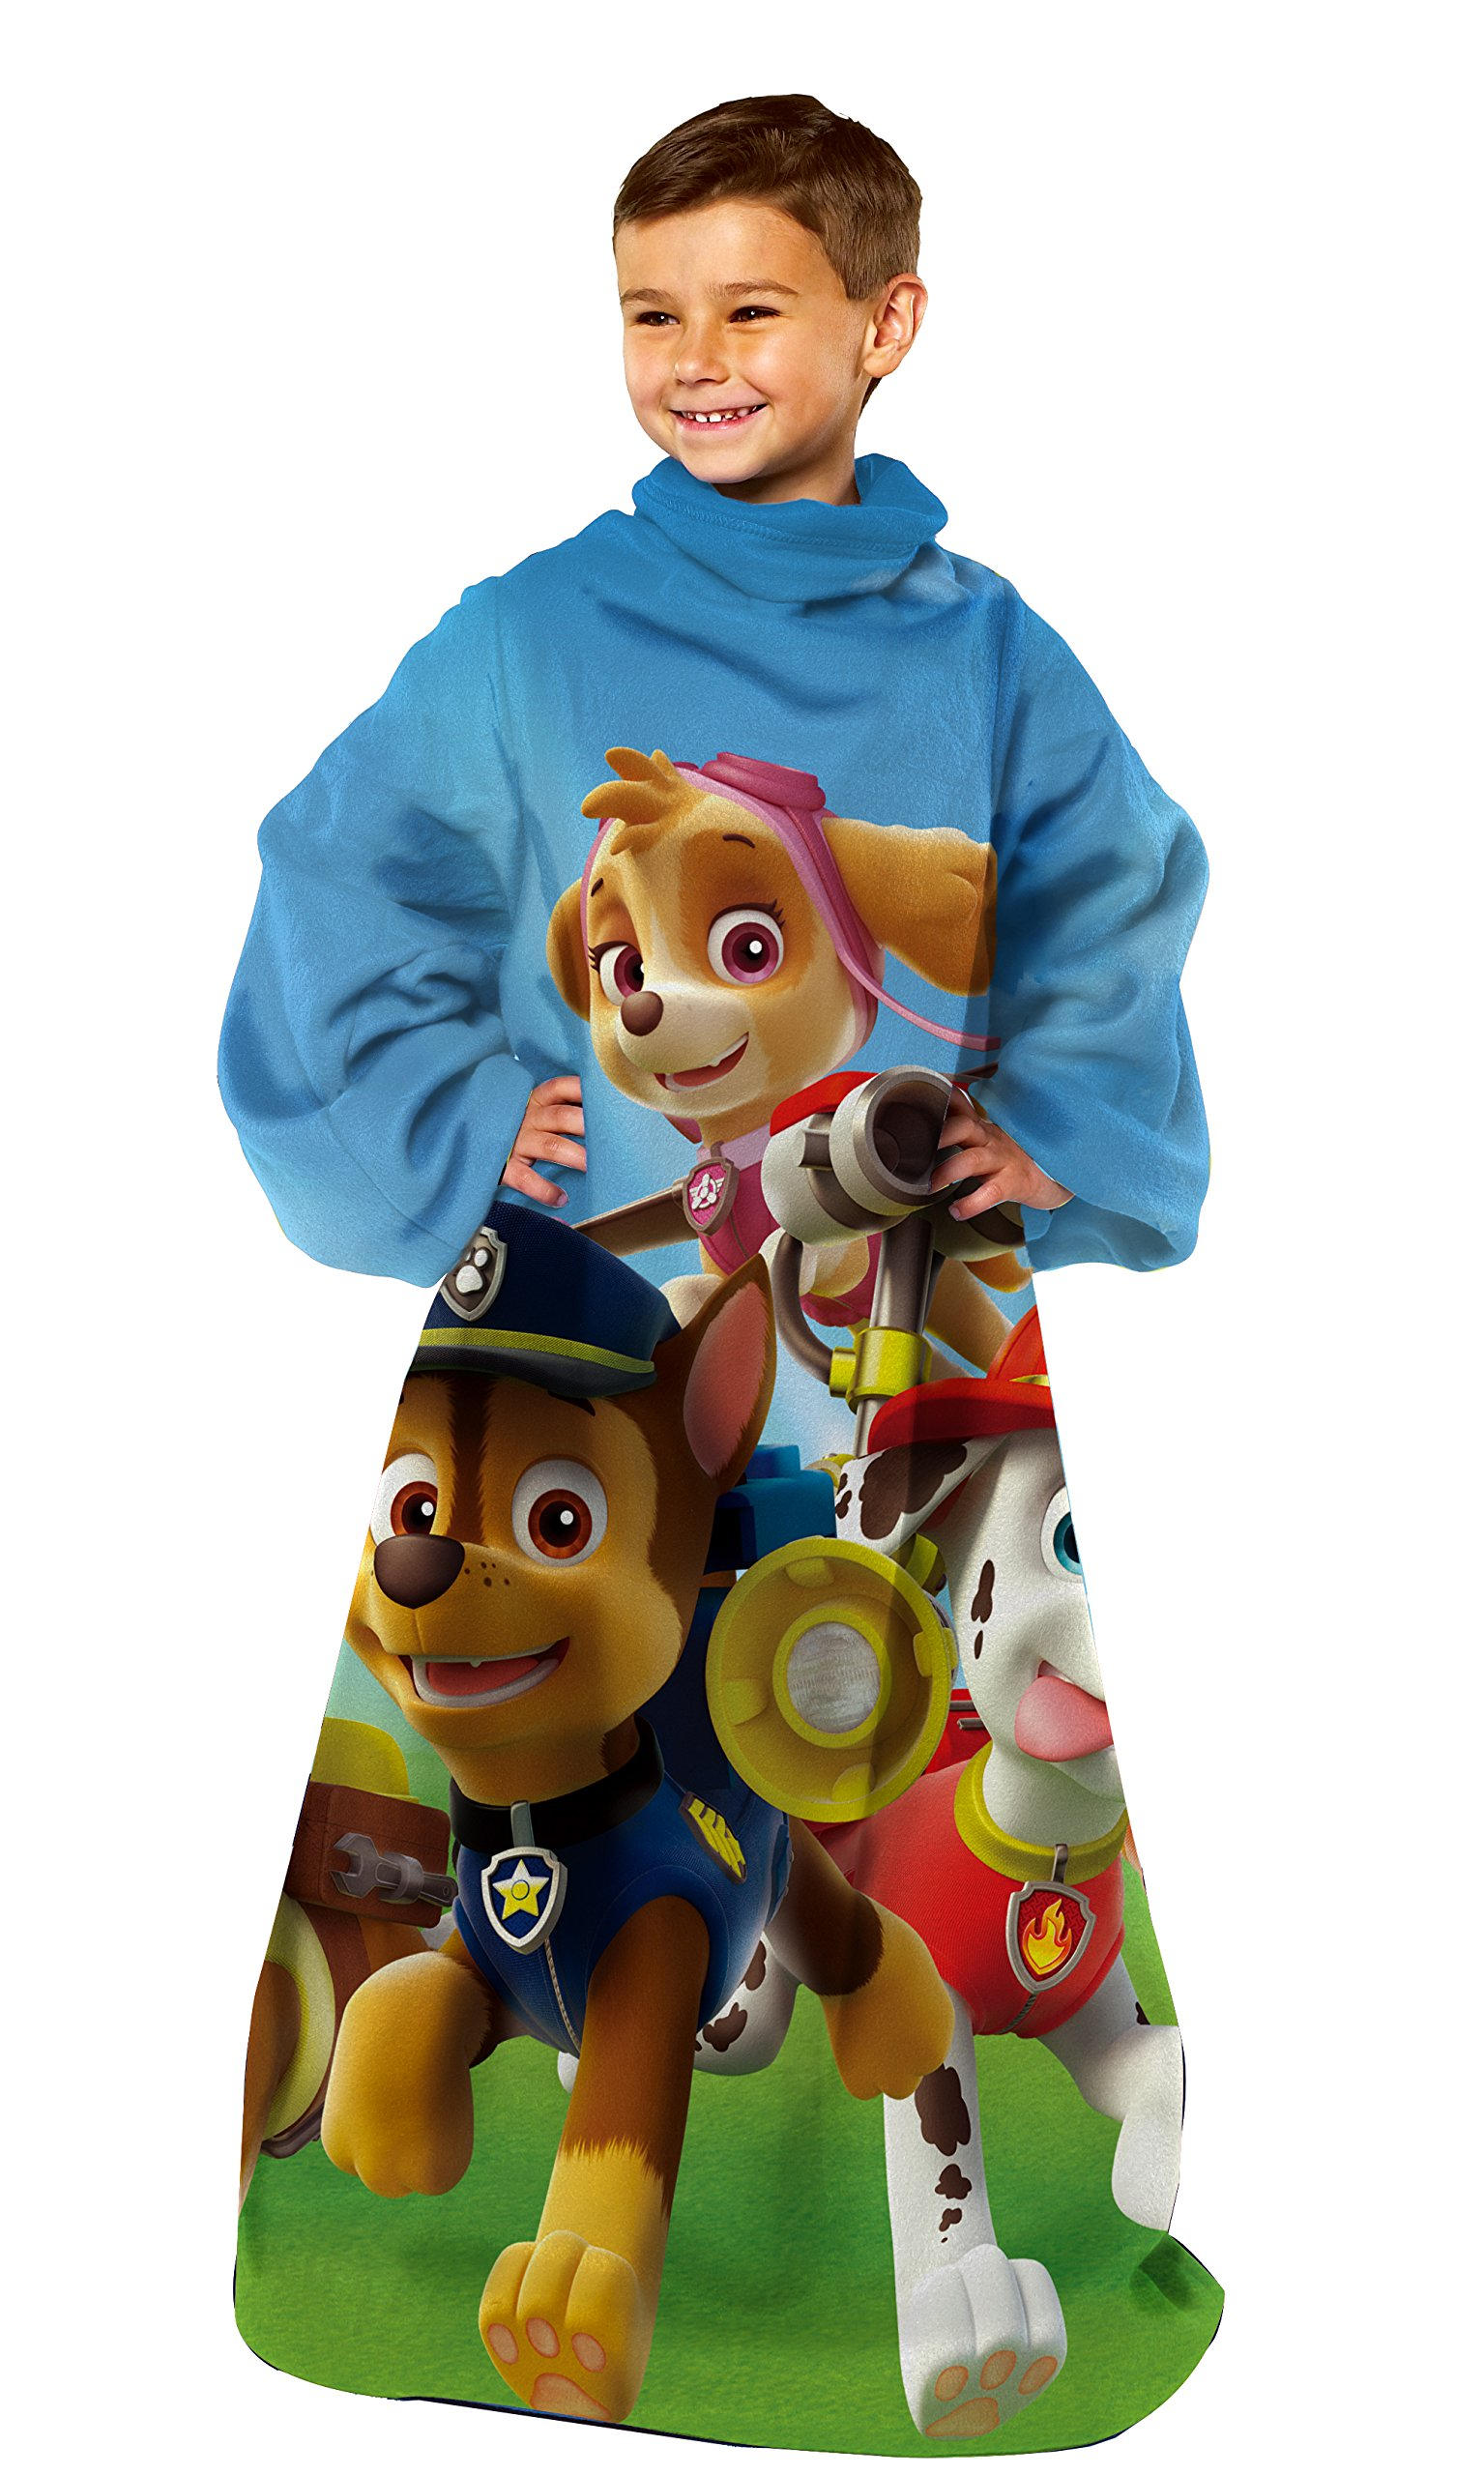 Nickelodeon's Paw Patrol, ''Race to the Rescue'' Youth Comfy Throw Blanket with Sleeves, 48'' x 48'', Multi Color by Nickelodeon